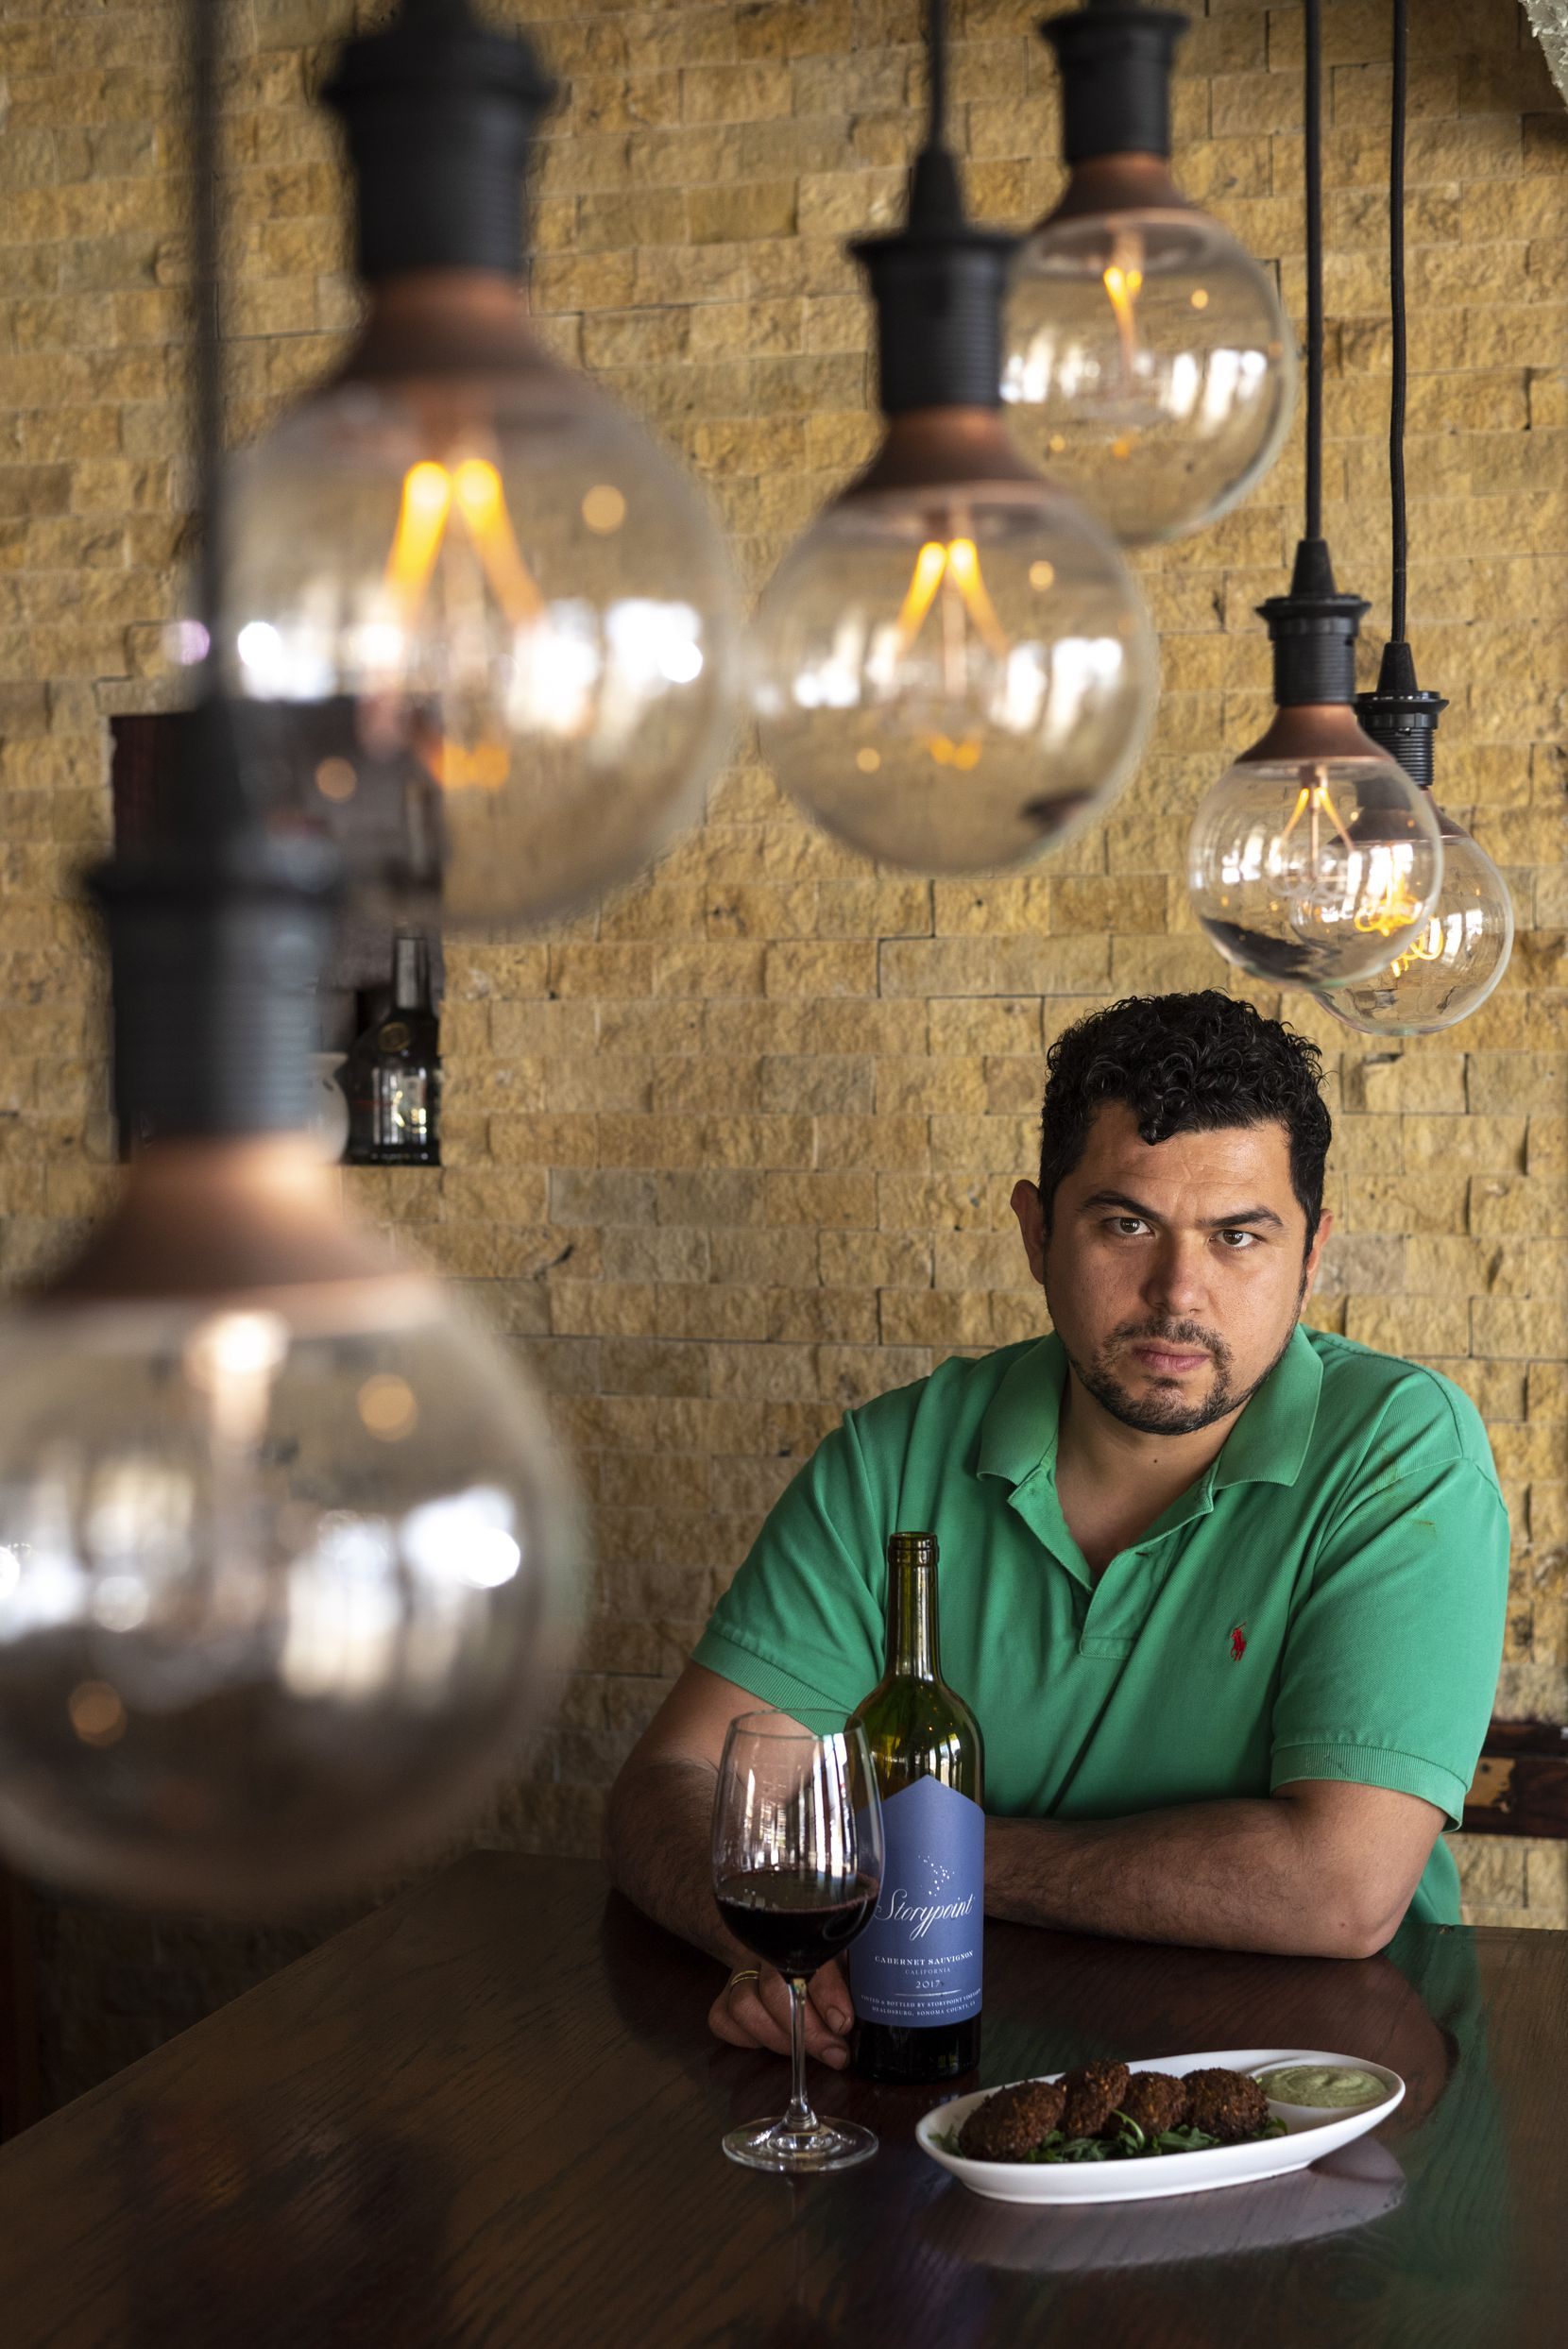 Chef and owner Sirzat Demir of Selda Mediterranean Grill in Dallas, and a dish of falafel, fried chickpea patties, served with a glass of wine.